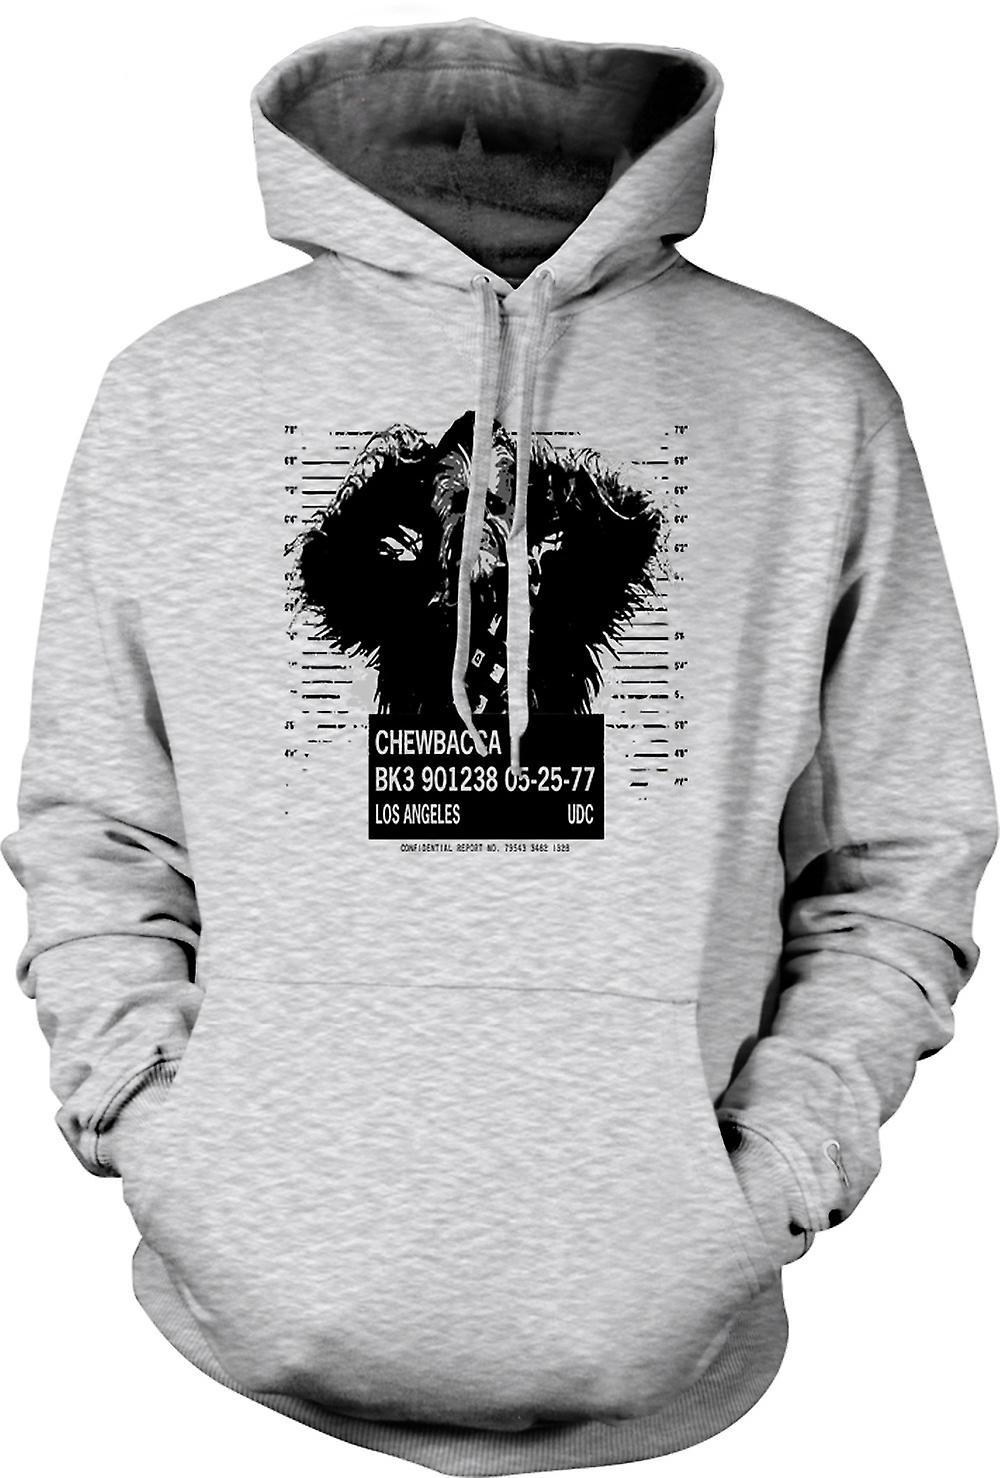 Mens Hoodie - Chewbacca Tasse SHOT - Star Wars